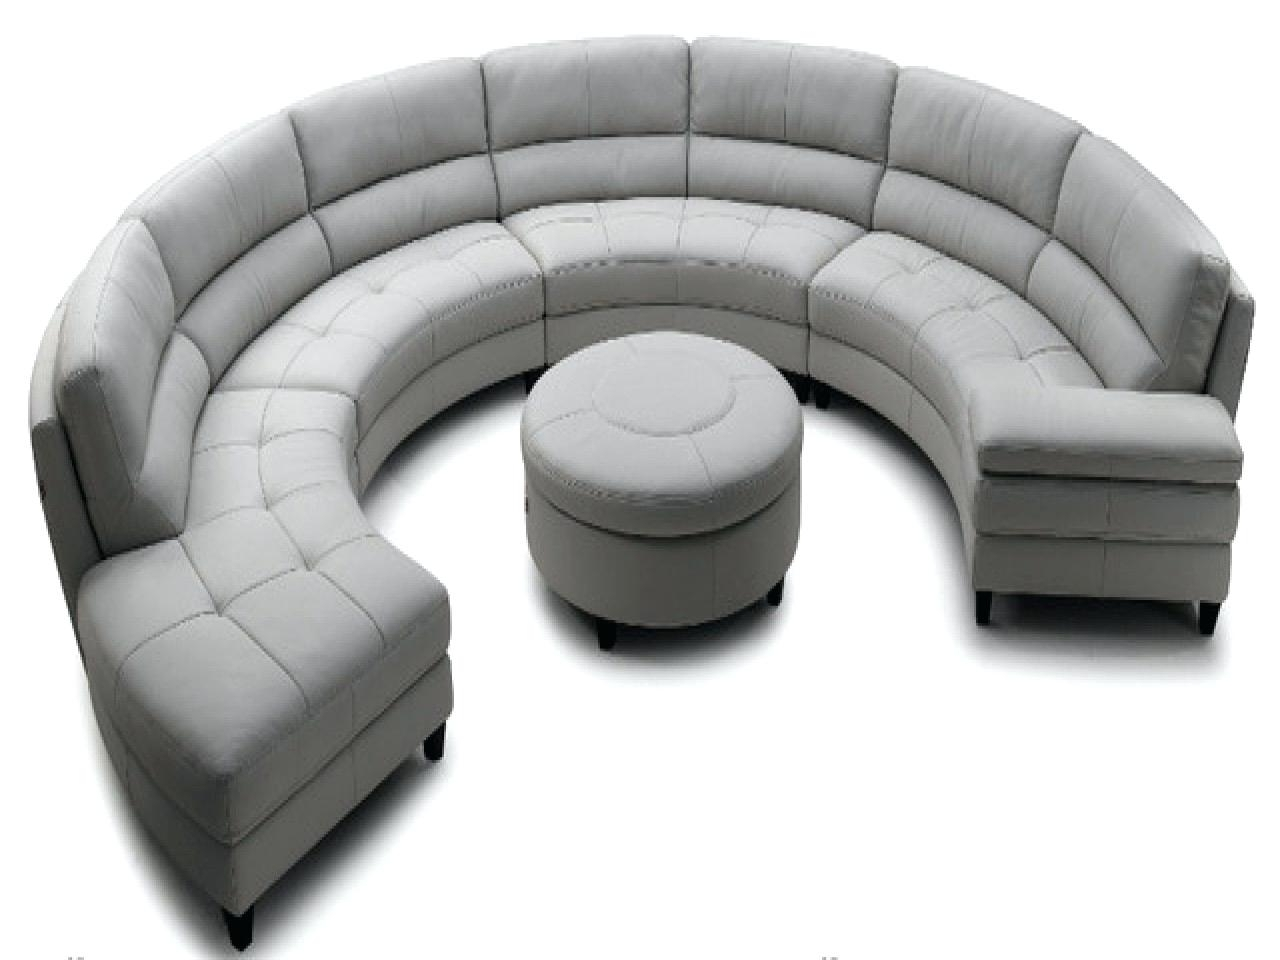 Circular Sectional Sofa Ed Modern Round Sofas Outdoor Curved With Regard To Trendy Round Sofas (View 2 of 20)